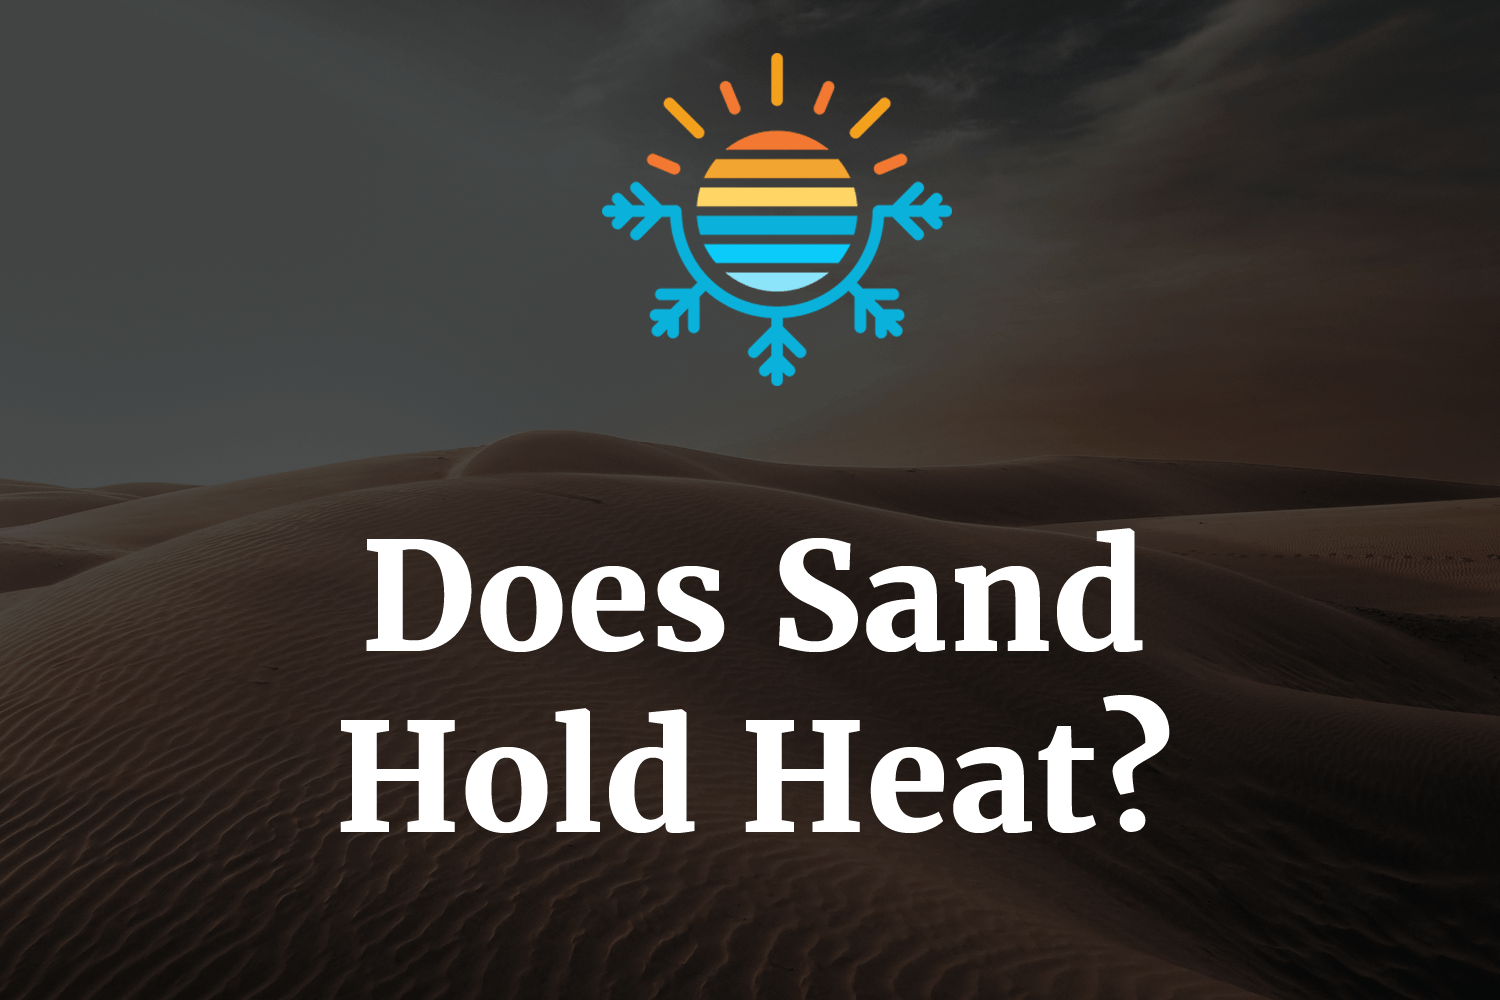 Does Sand Hold Heat